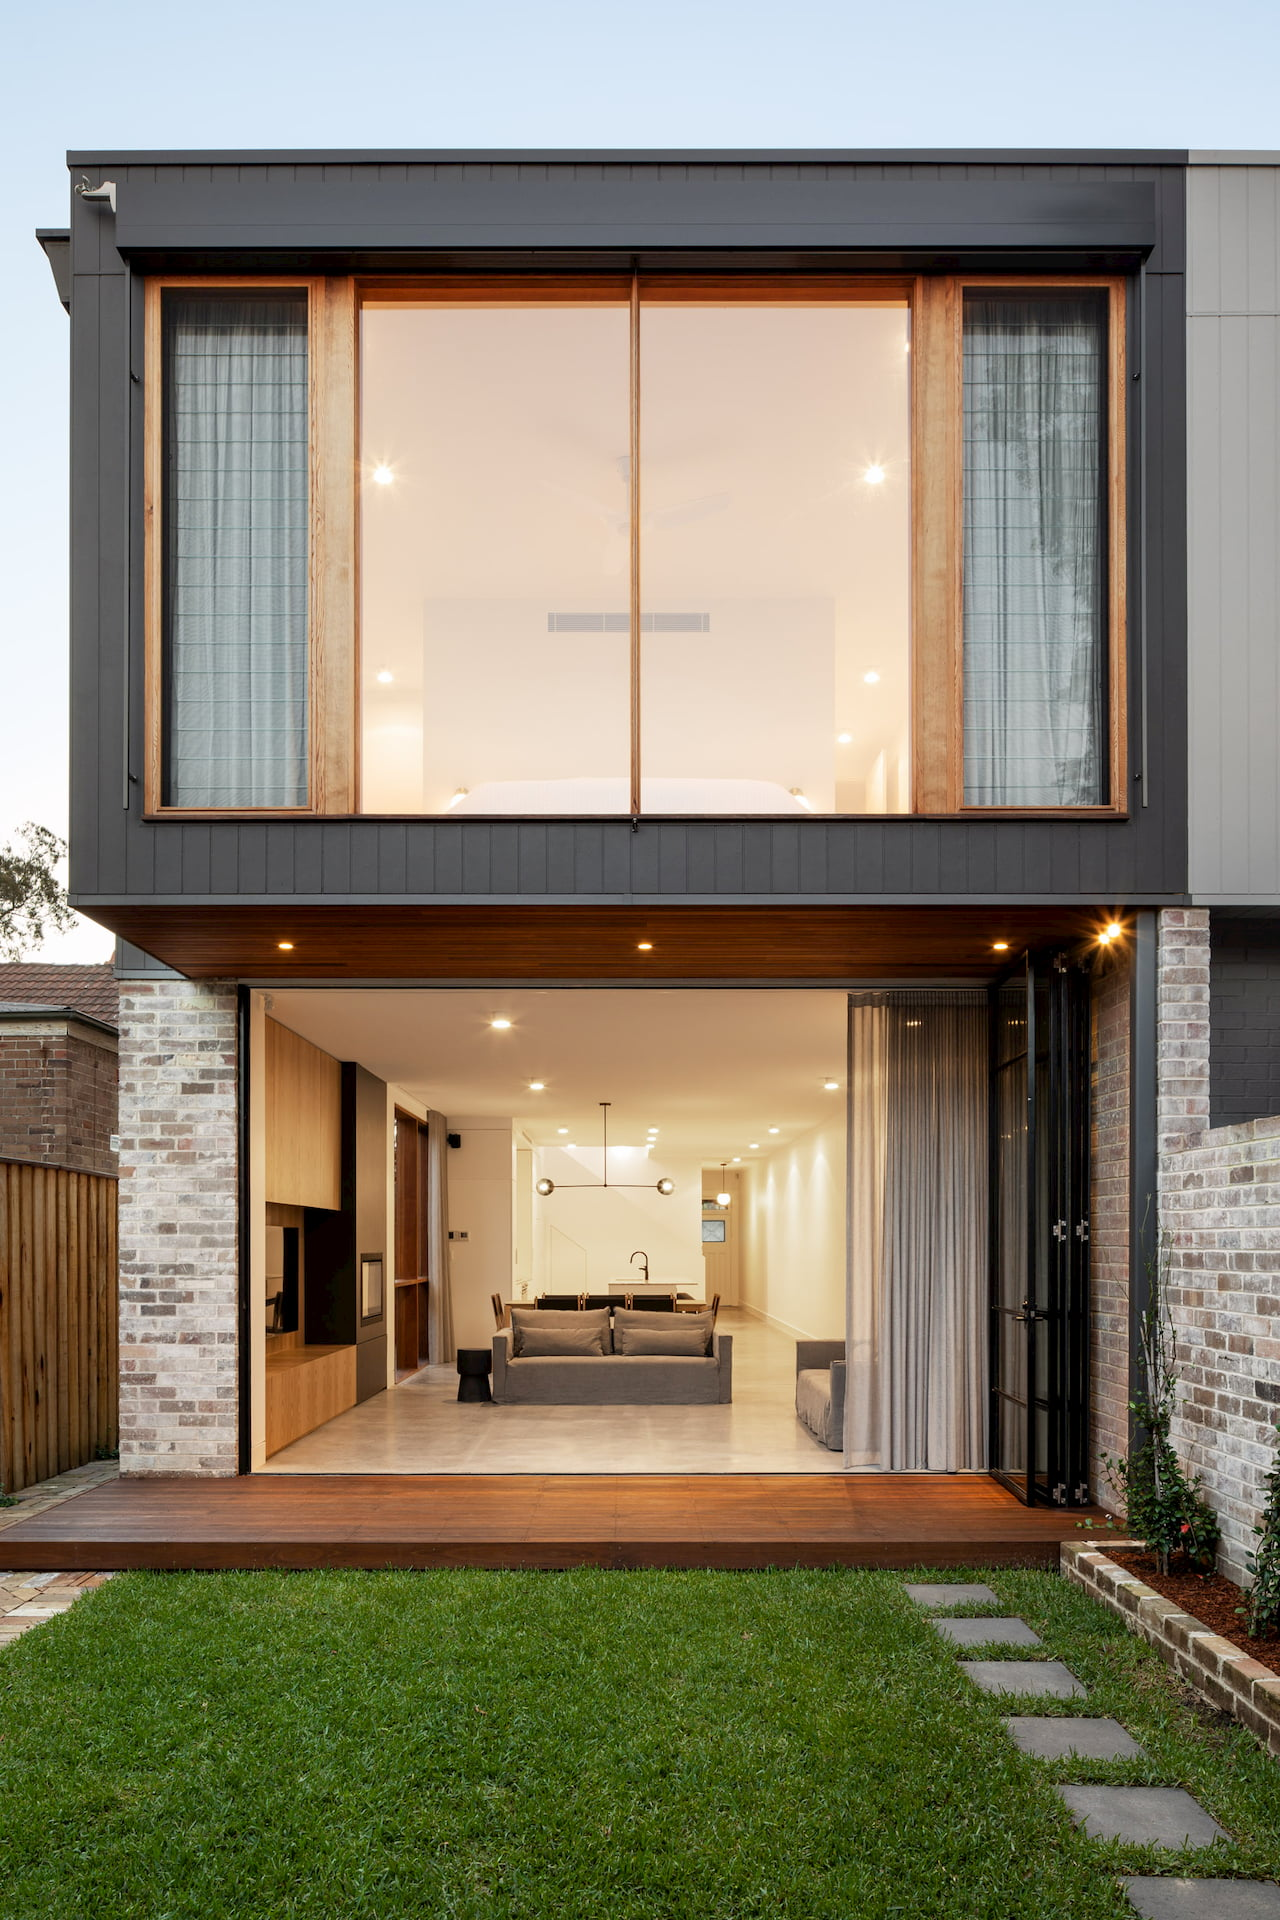 Randwick Architects, Wentworth St House Architectural Design